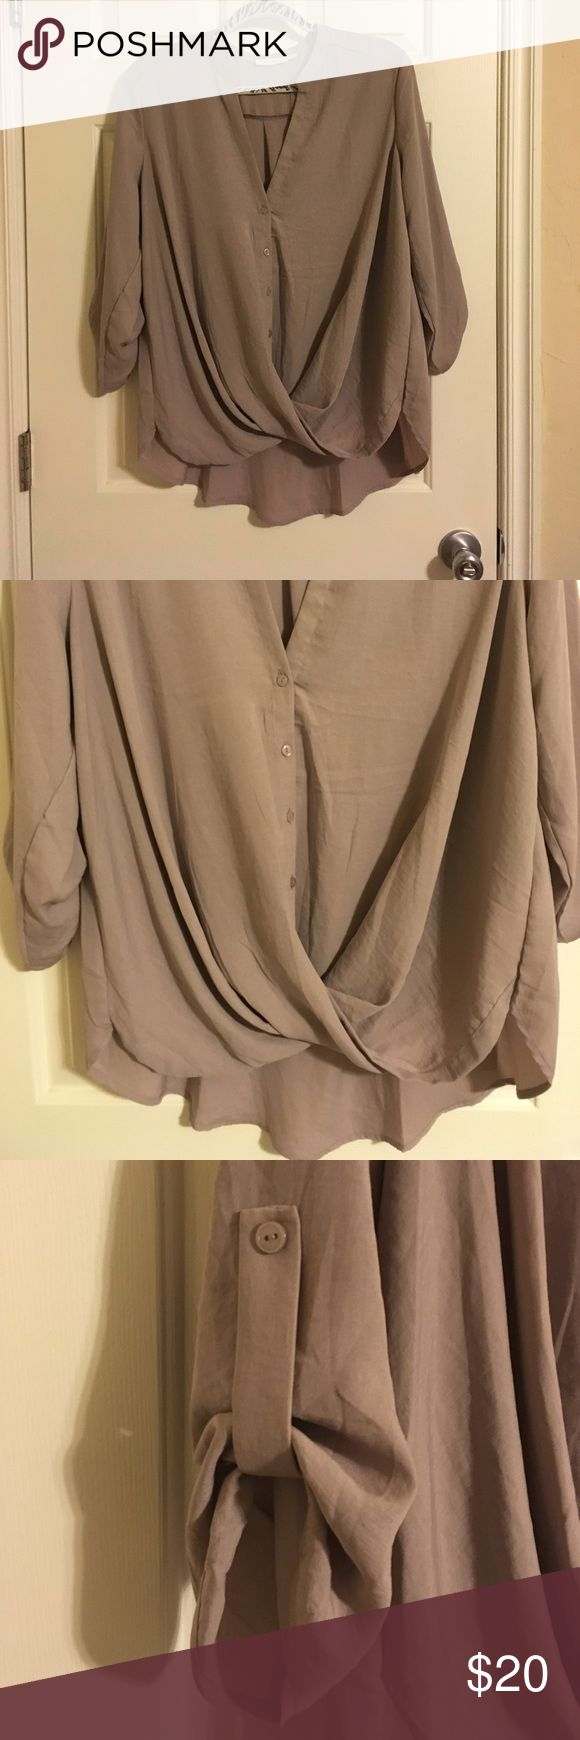 Lush Twist Front Top New with tags. Purchased from Nordstrom. LUSH soft tan (sphinx) blouse. V-neck, then buttons down, but wait! The bottom hem is a twist/loop design. Longer shirt tail in the back. About 3/4 length sleeves that fold back with a tab. This top is amazing and can be worn with anything! Pants or a skirt to work, leggings, a mini skirt, denim cut offs, jeans... Soft, lightweight material feels so good on the skin. Again, one I bought in several colors. May still be in stores…